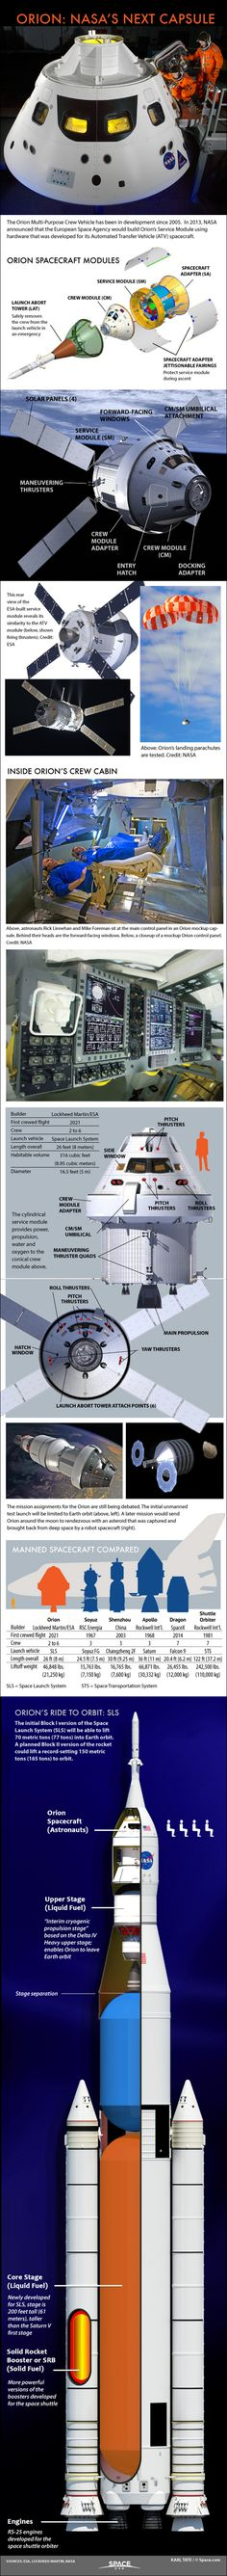 Infographic: Details of the Orion four-person capsule that could carry crews to the Moon or an asteroid, beginning in 2021.